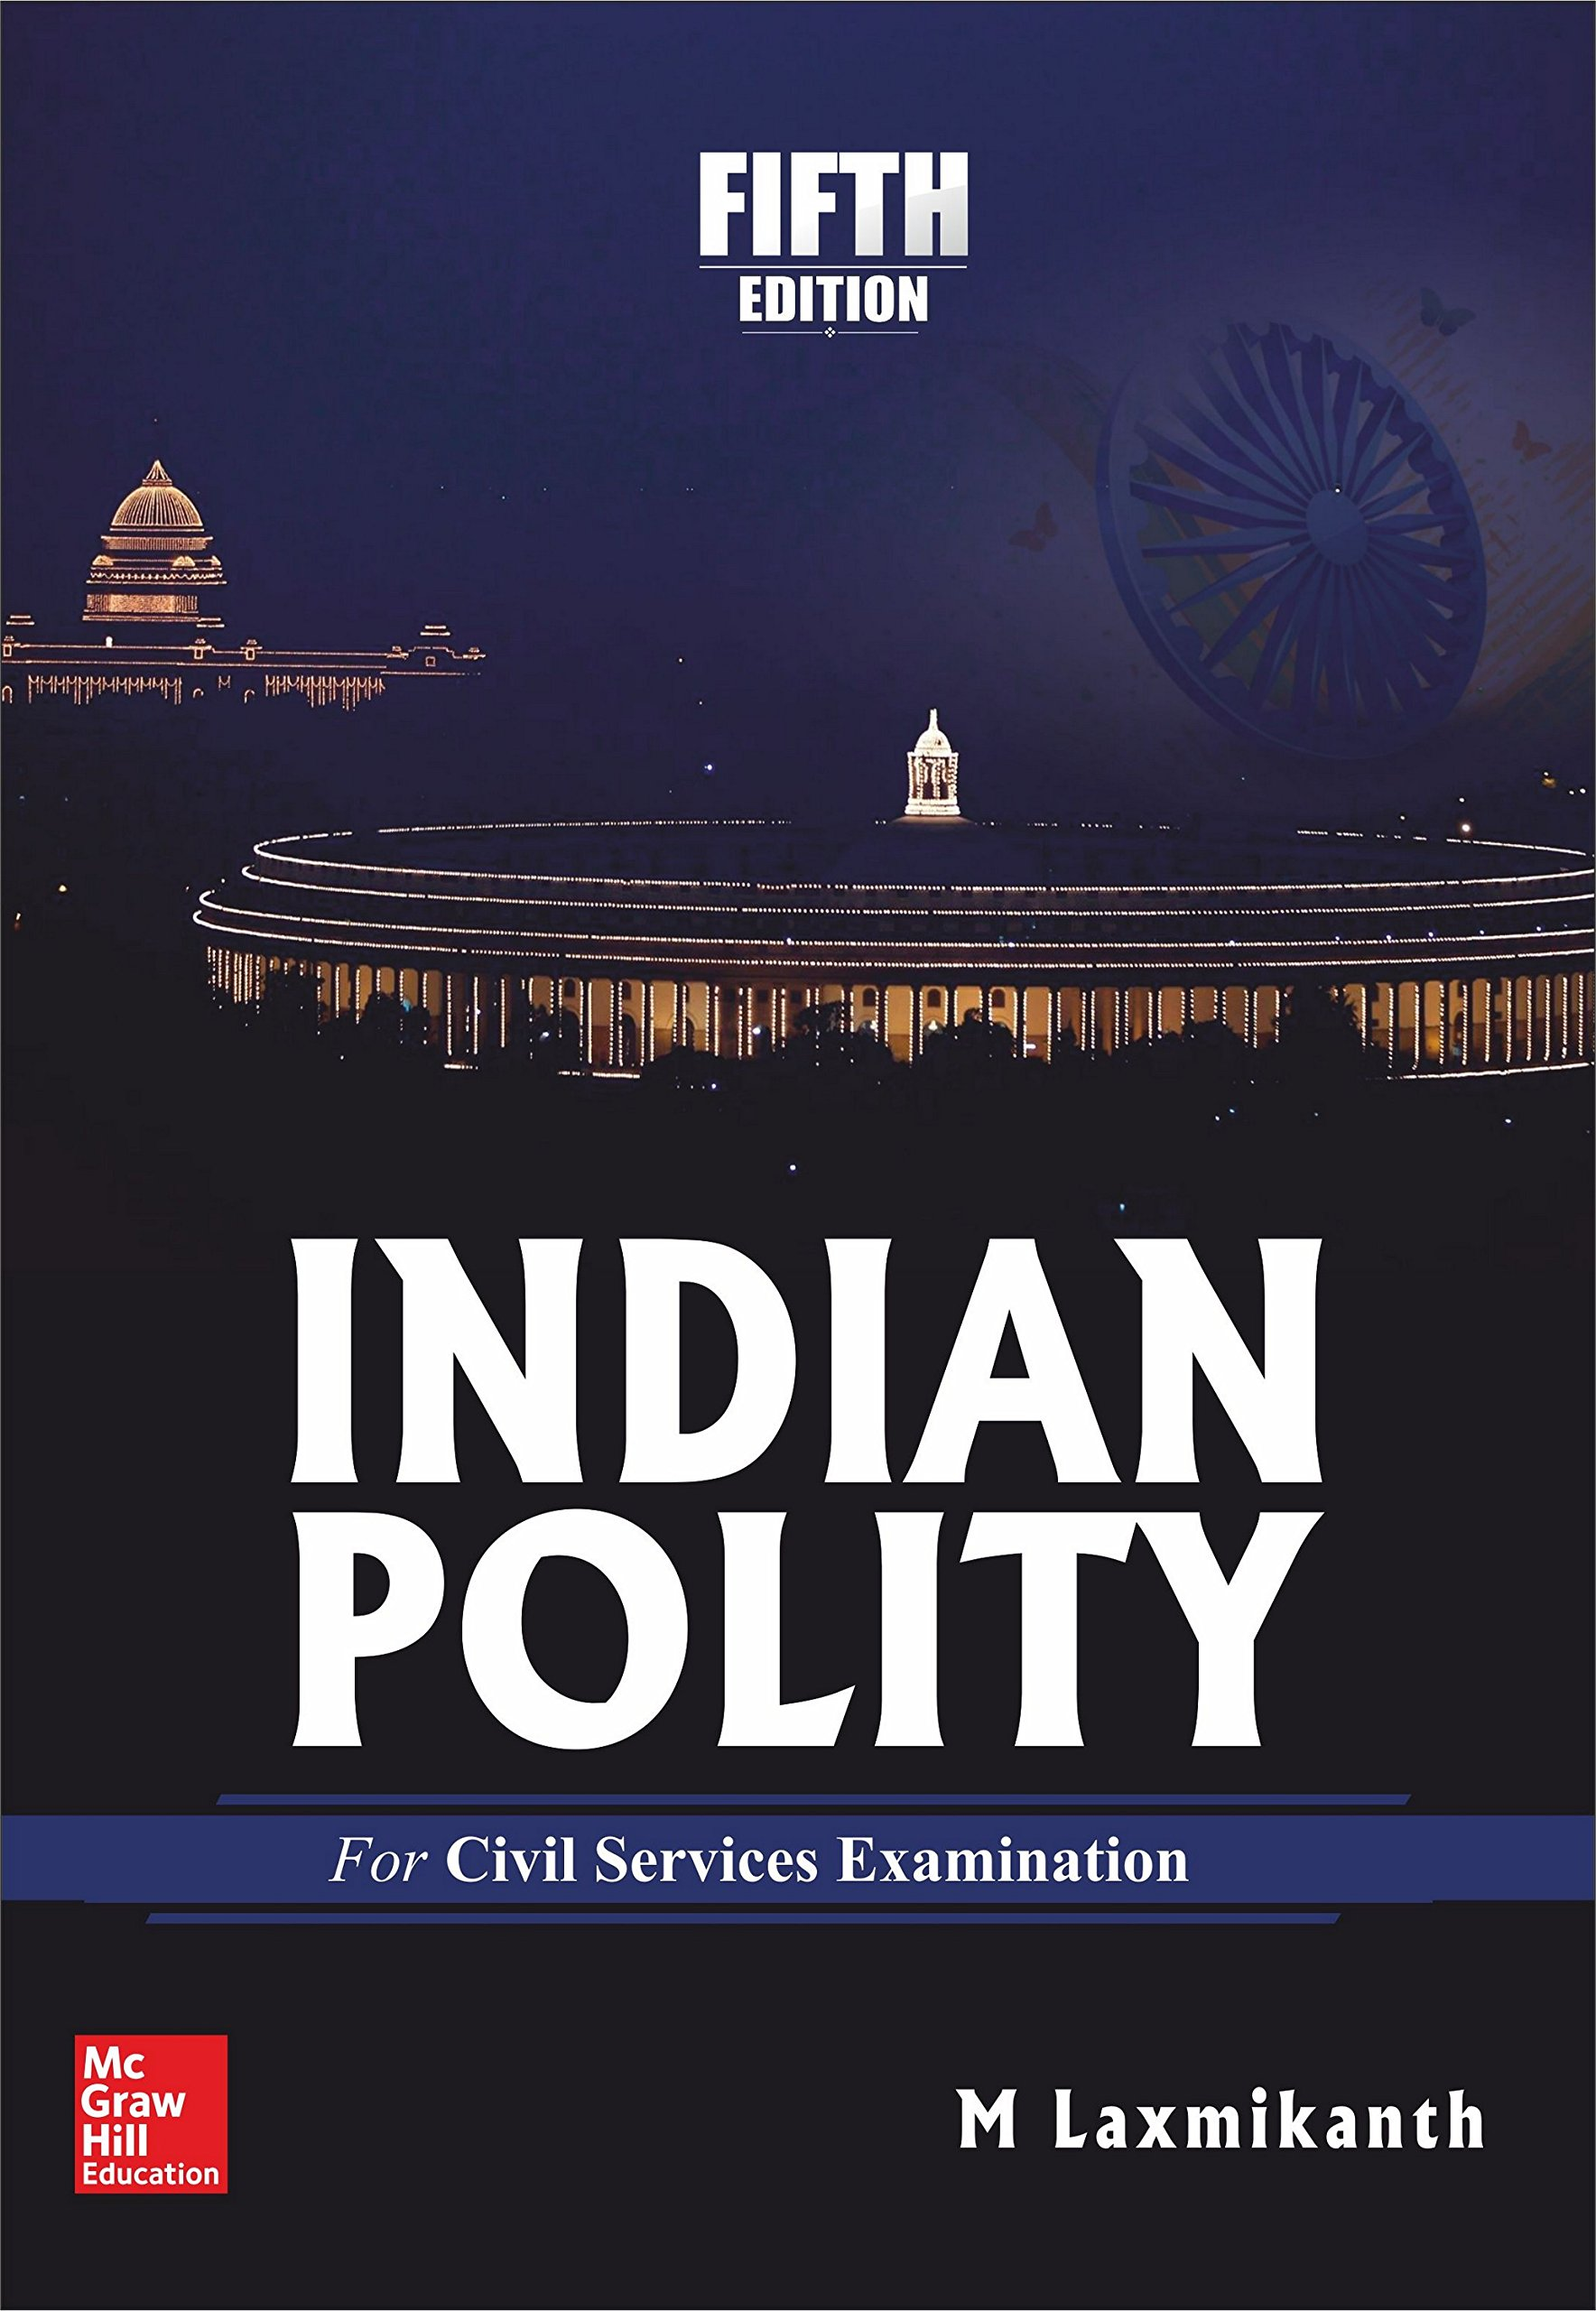 how-to-cover-indian-polity-in-an-effective-manner-by-jatin-verma